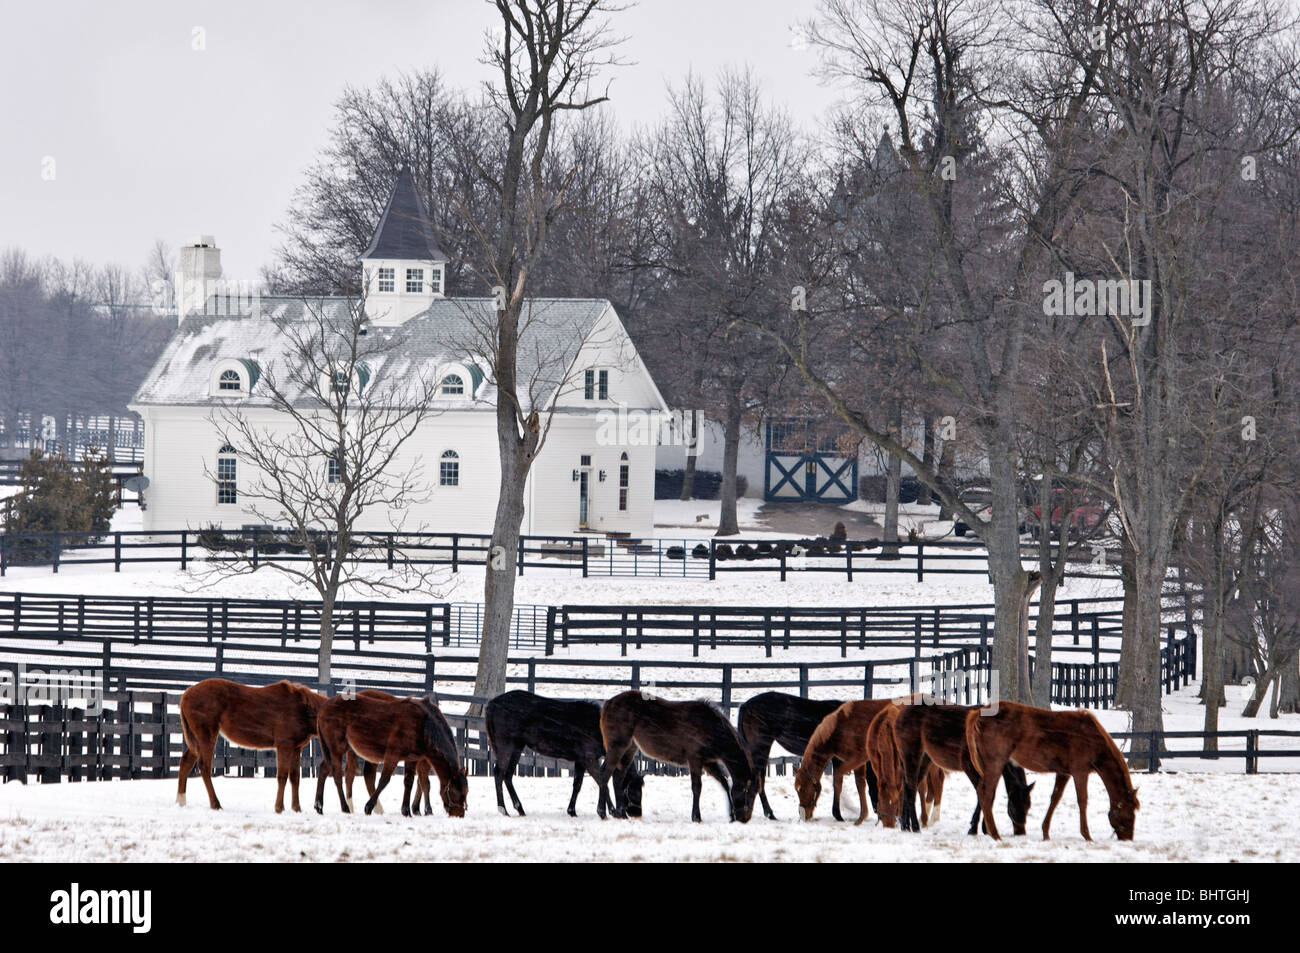 Thoroughbred Horses in Snow Covered Paddock in Fayette County, Kentucky - Stock Image